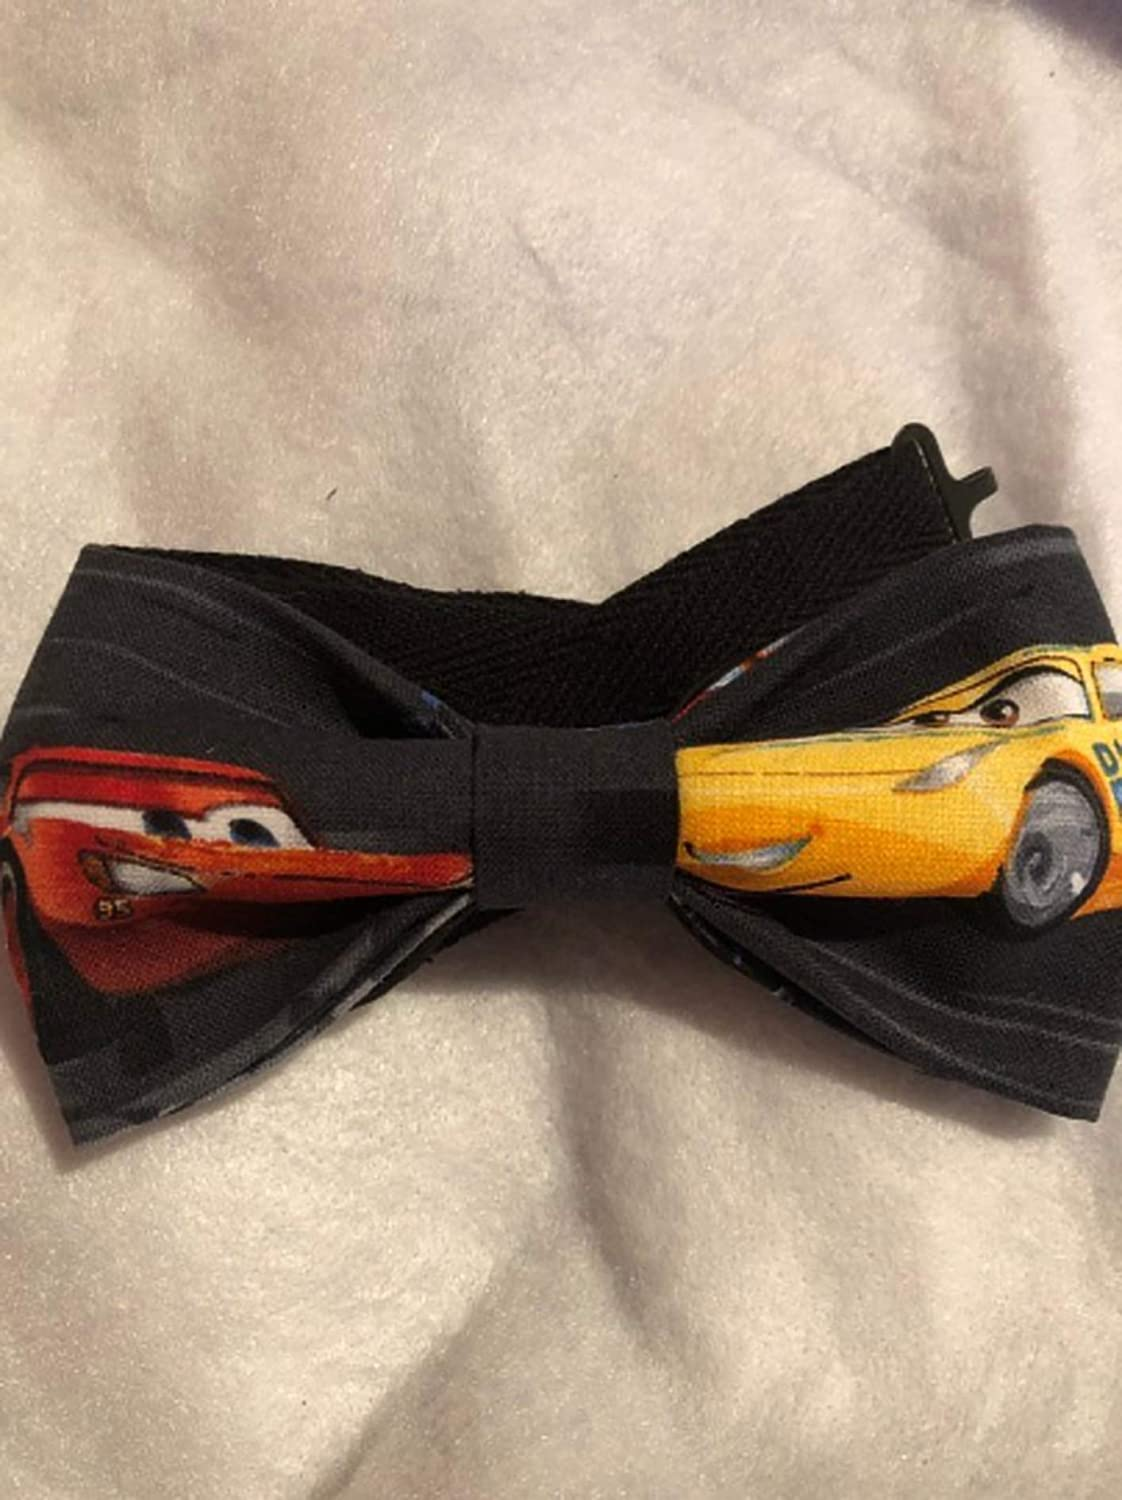 Disney Cars kids bow tie.Lightning McQueen, Pixar Cars bow tie. Perfect for Toddlers to 6 year olds. 15' adjustable strap.